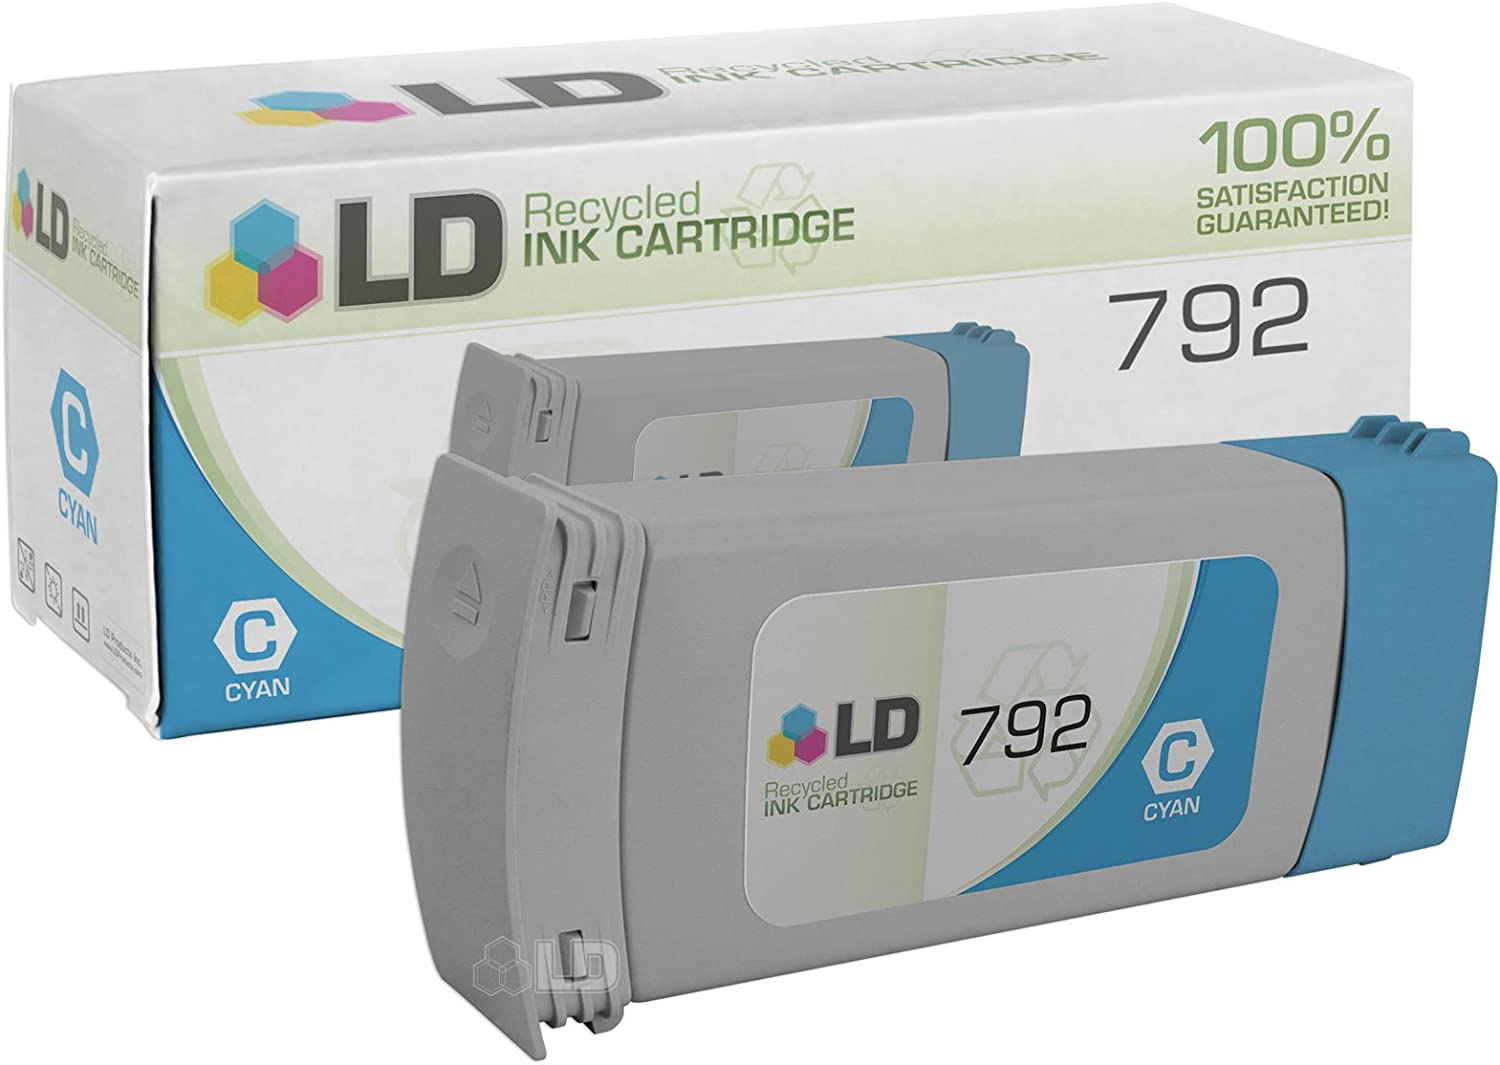 LD Remanufactured Ink Cartridge Replacement for HP 792 CN706A (Cyan)